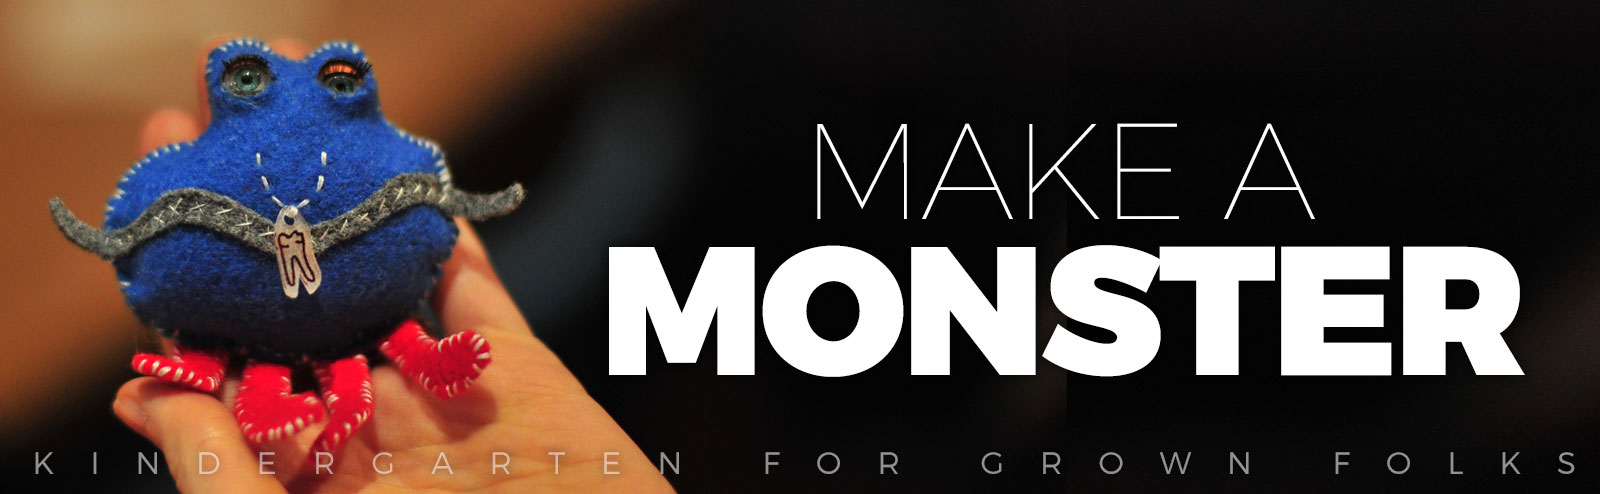 November 7 - Make a Monster!